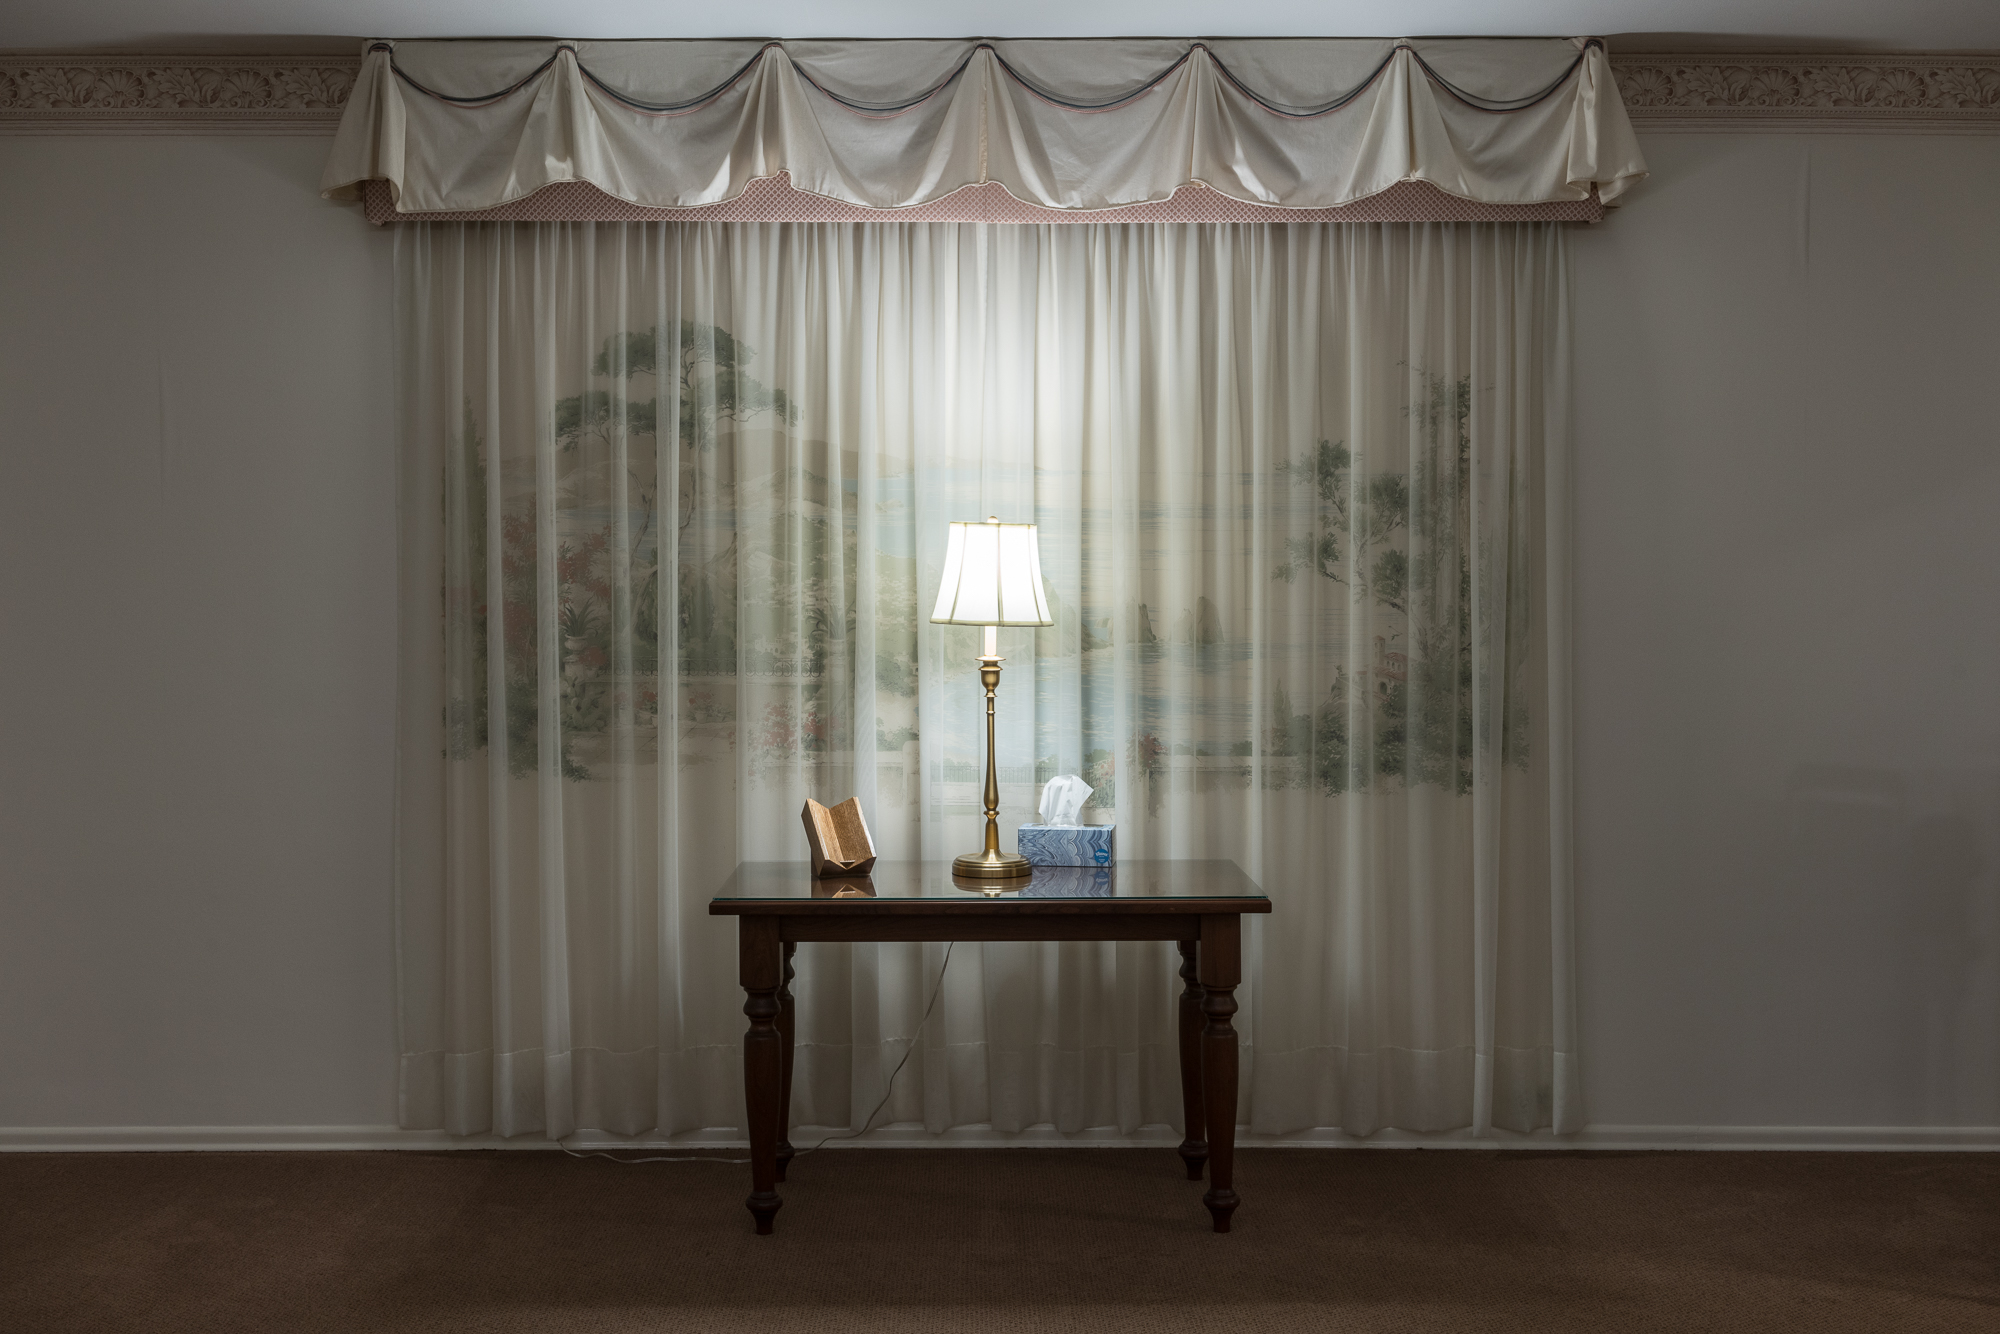 Simulated Window, Moll Funeral Home, Mascoutah, Illinois, 2017